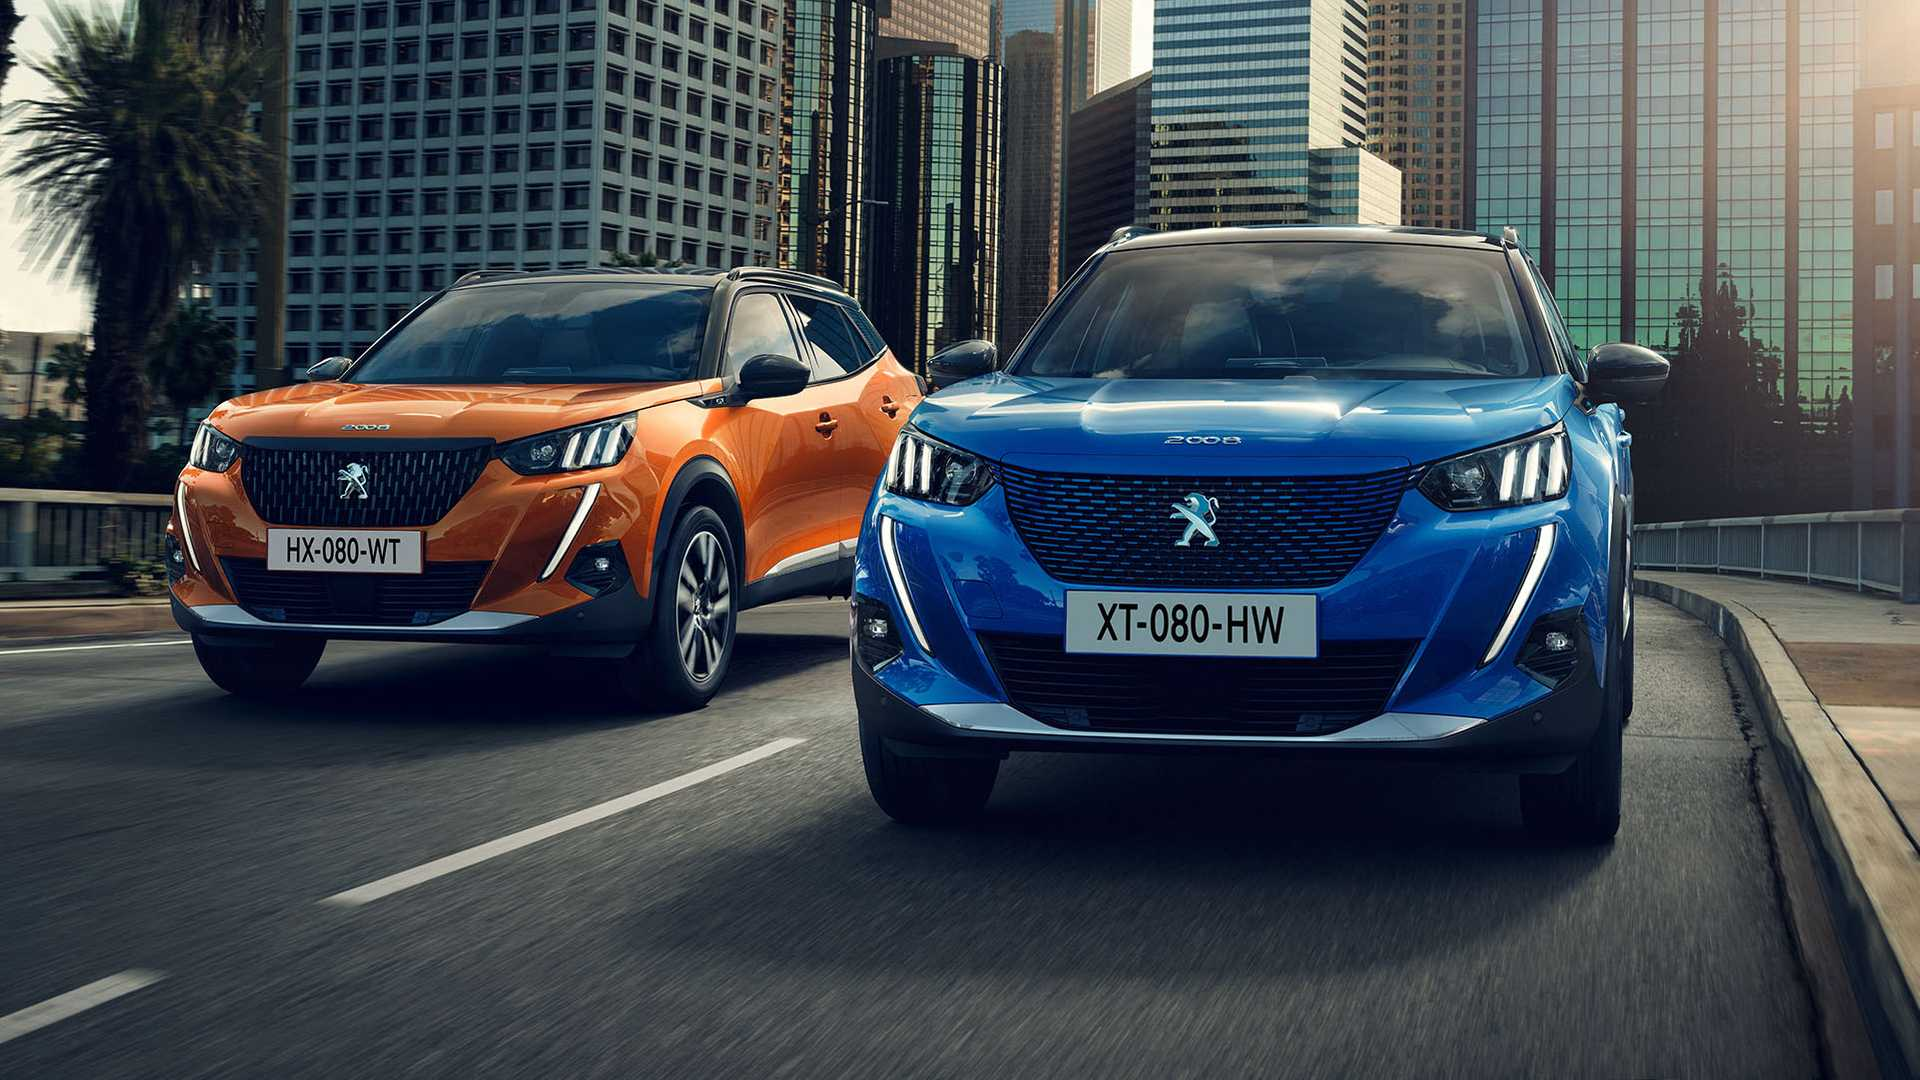 Reservations now open for new Peugeot 2008 and e-2008 mini-SUVs